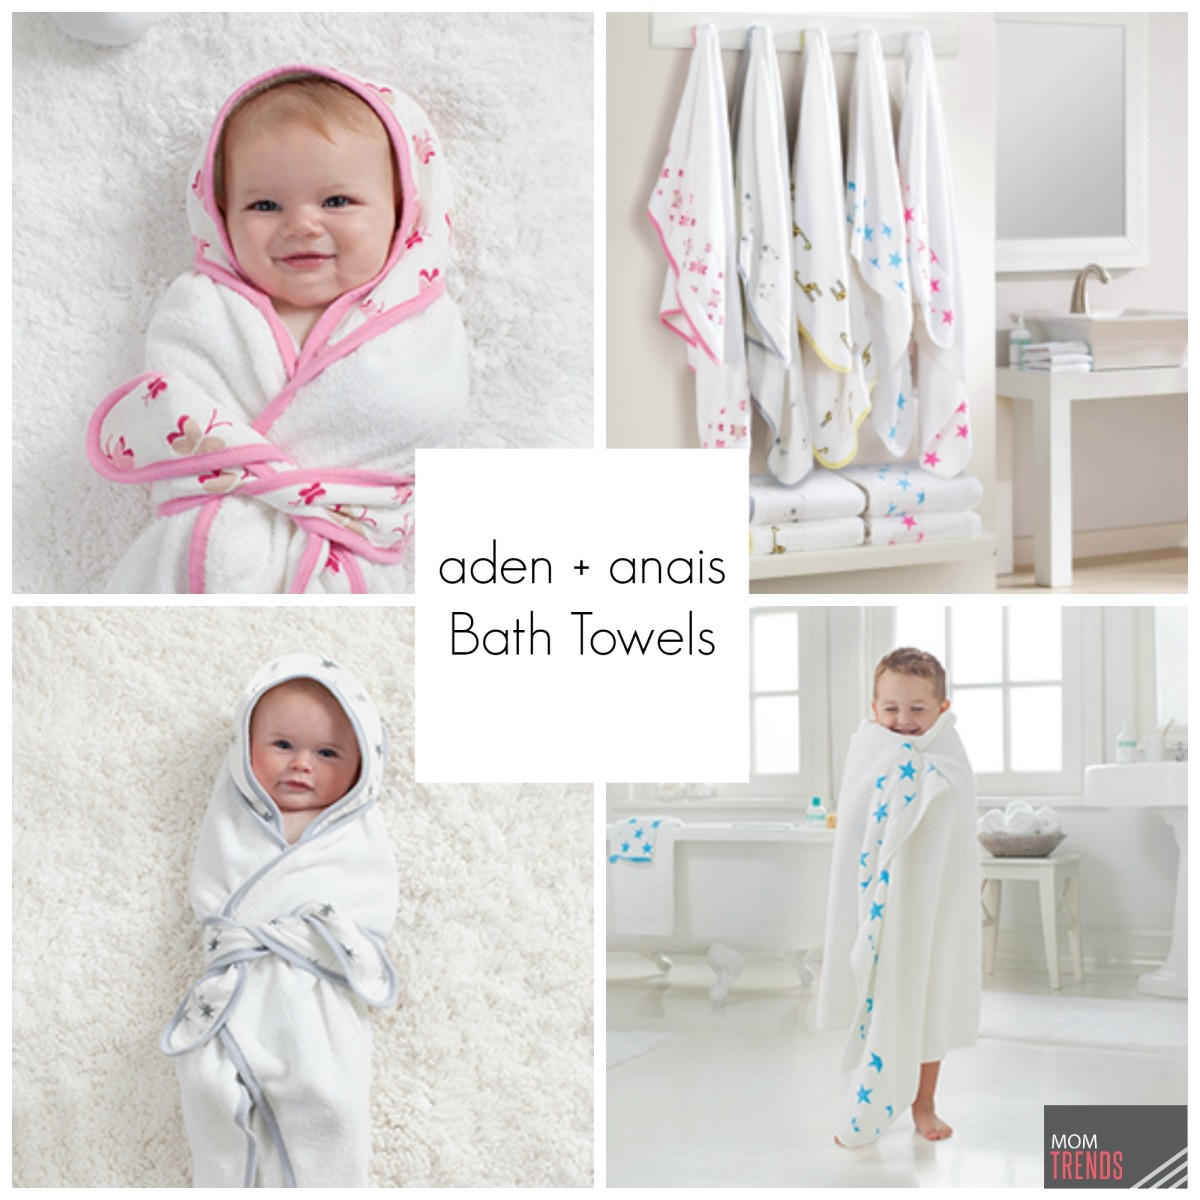 aden+anais bath towels